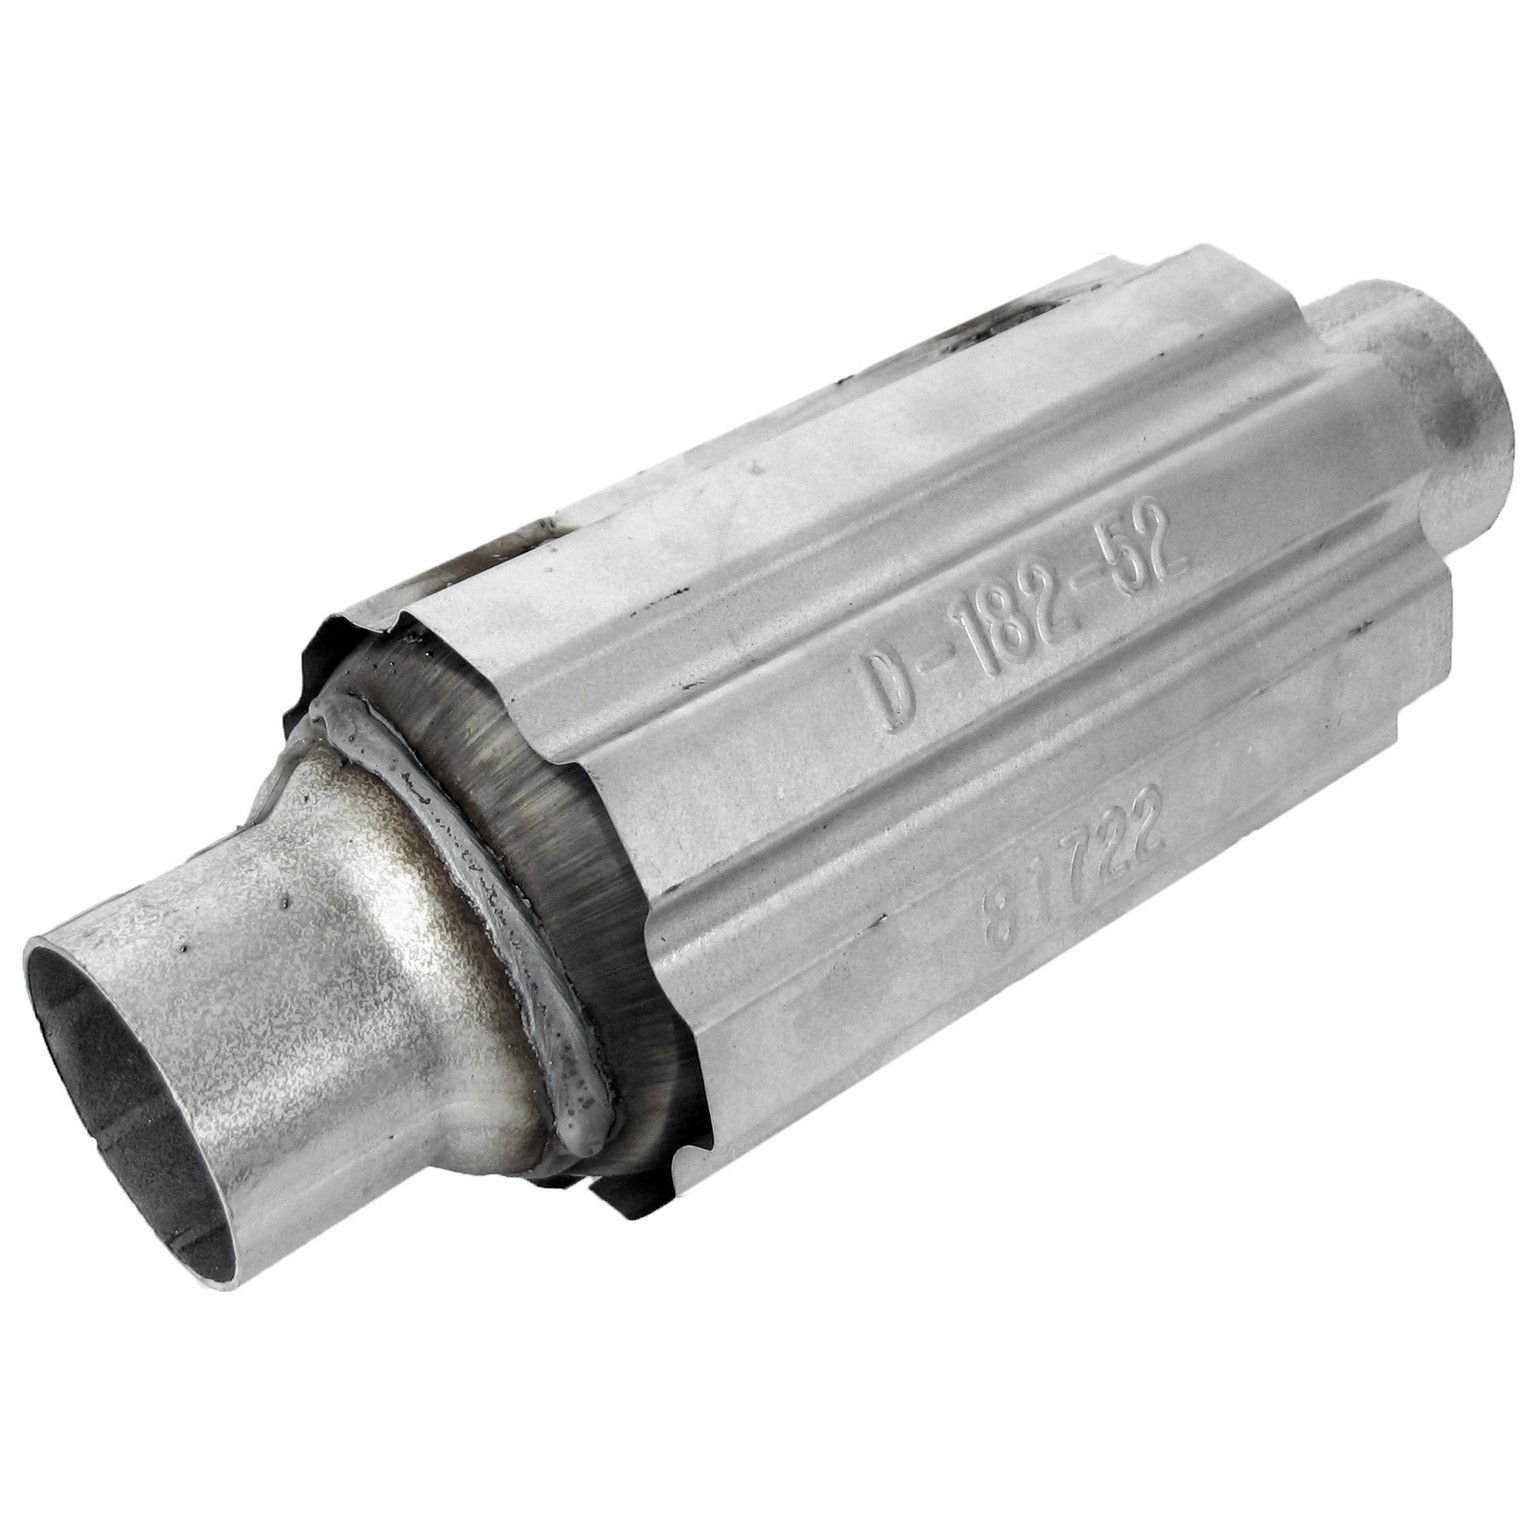 2000 Toyota Tundra Catalytic Converter Rear 8 Cyl 47l Walker 81722 Engine Family Ytyxt047gxw Legal For Use In The States Of California And New: 2004 Toyota Tundra Catalytic Converter At Woreks.co